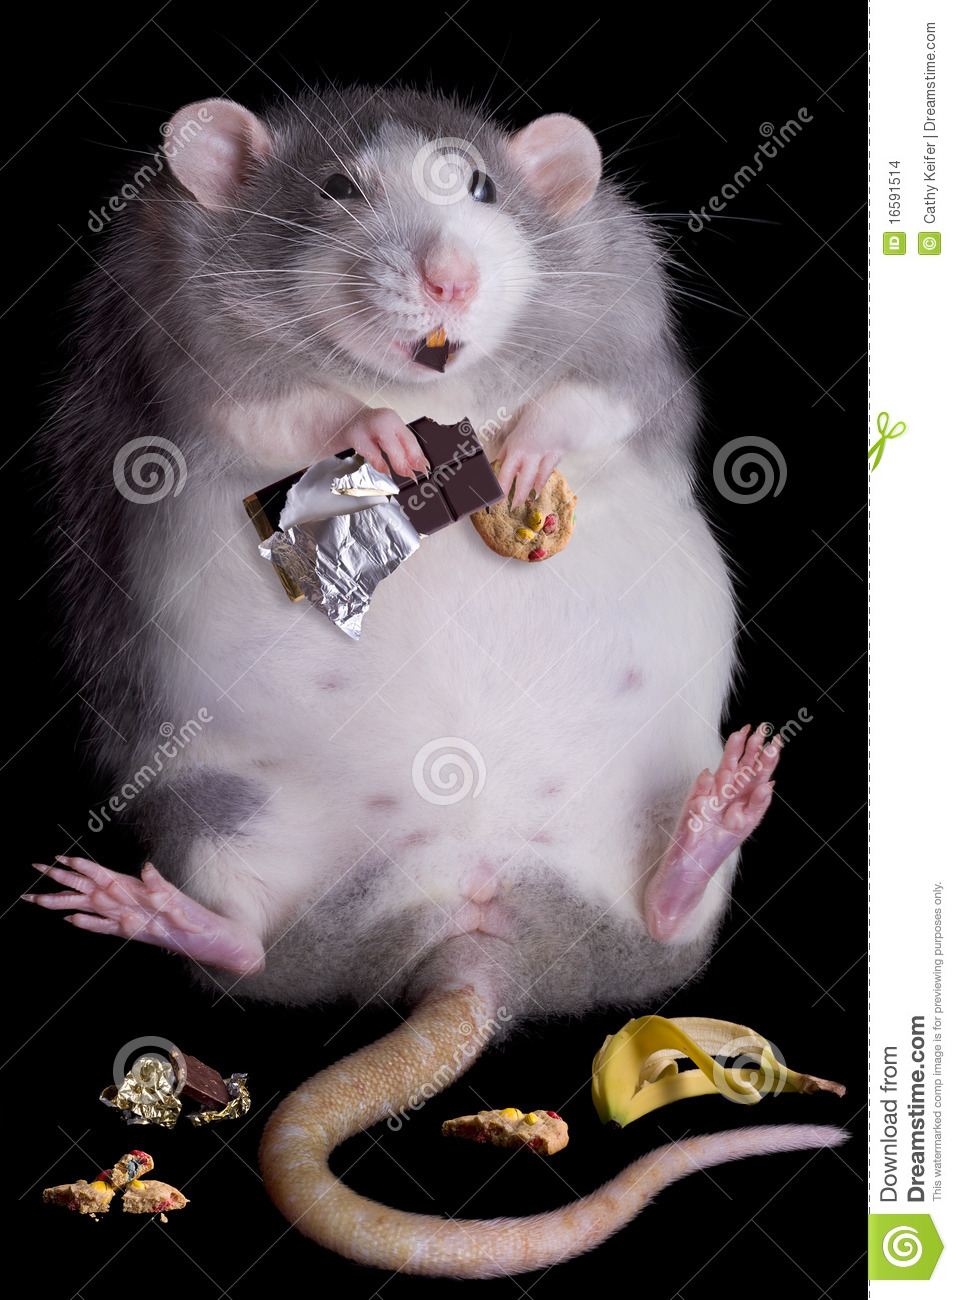 fat rat named Drucilla is eating candy and cookies.